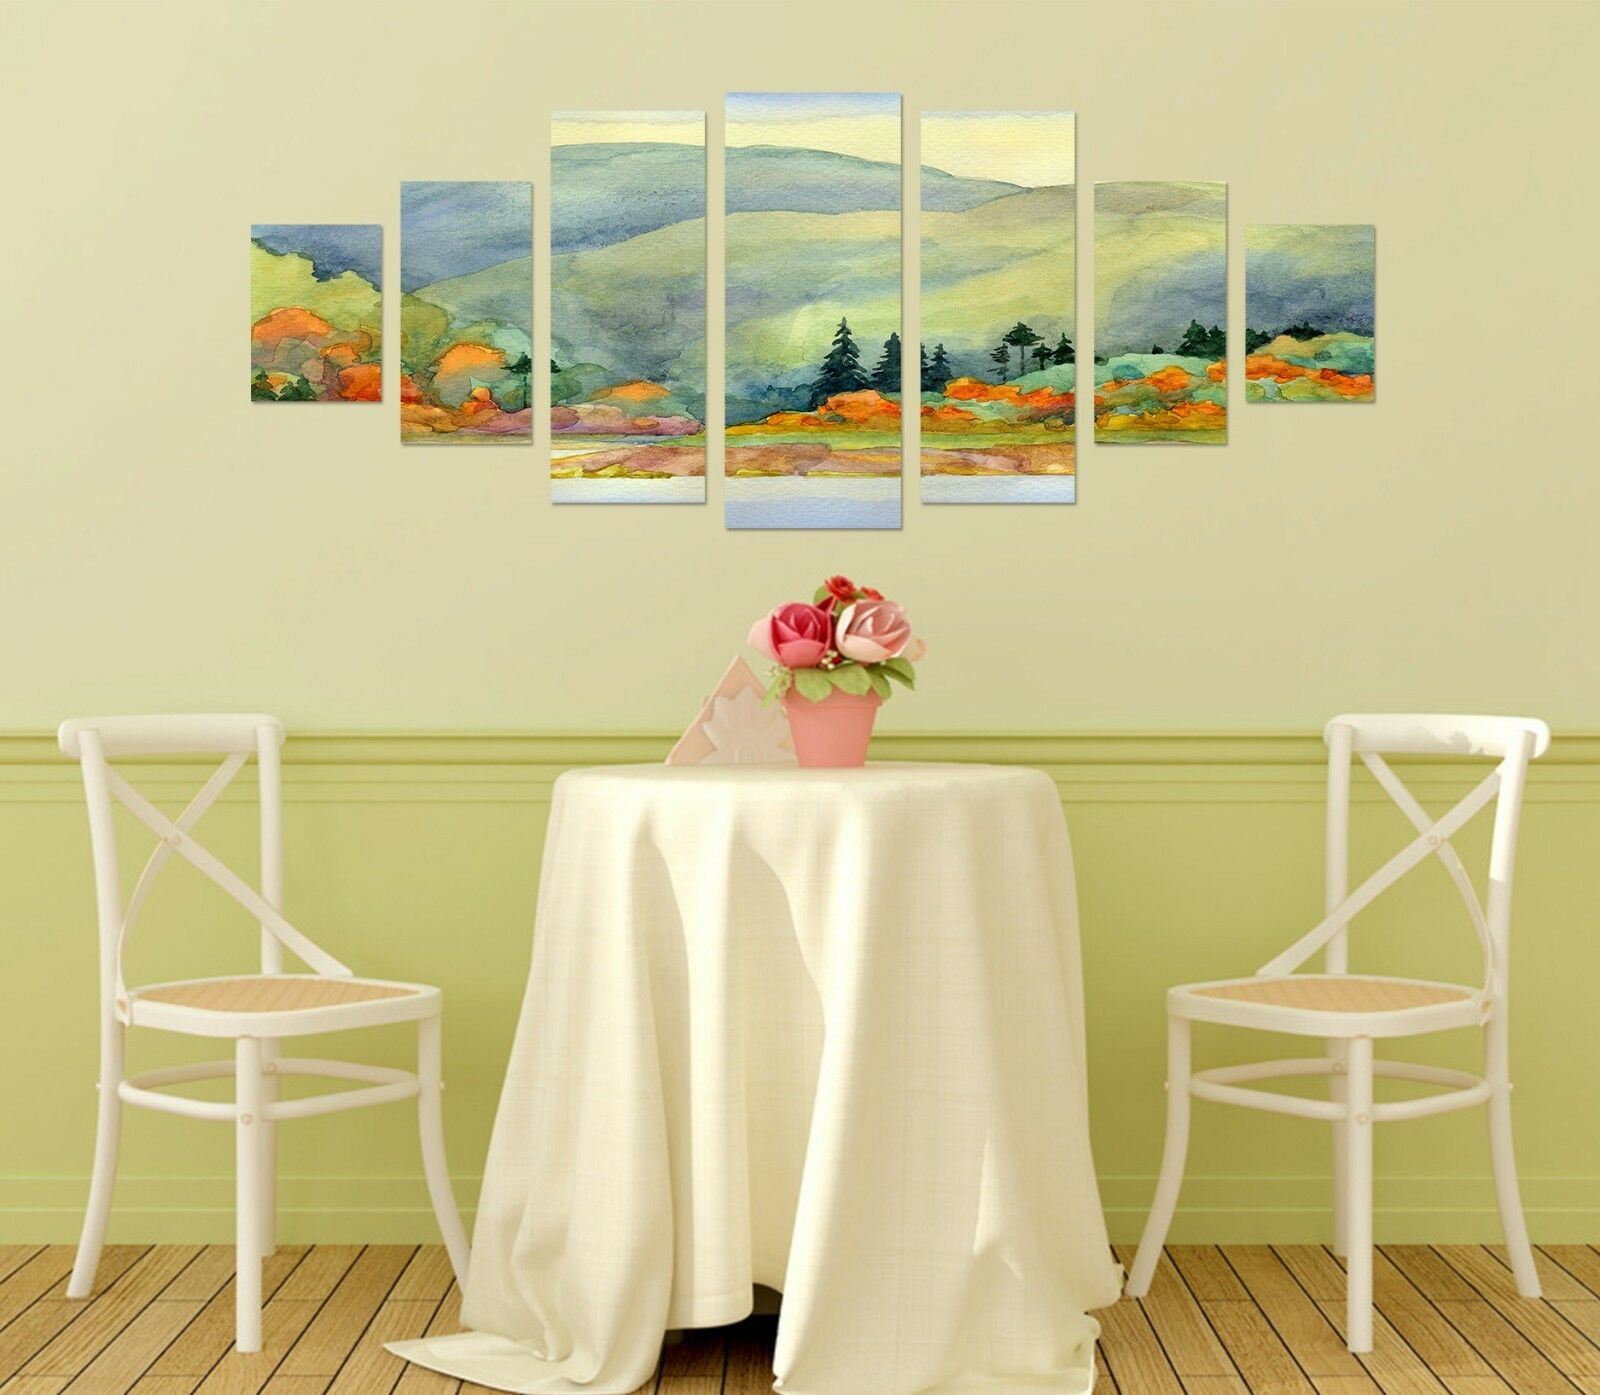 3D Painting Landscape 6 Unframed Print Wall Paper Decal Wall Deco Indoor AJ Wall